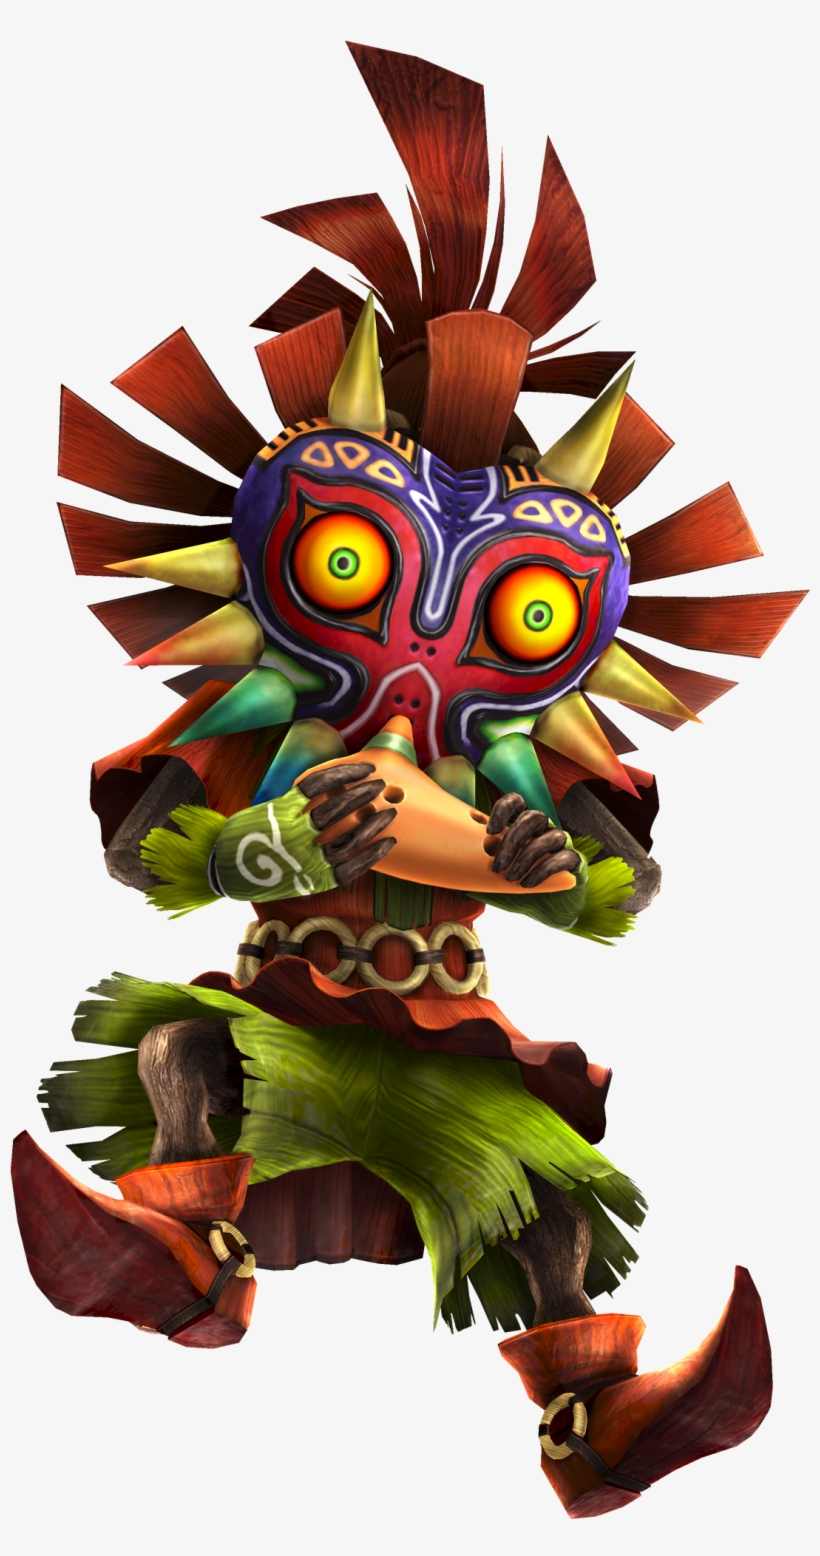 Skull Kid Ocarina - Skull Kid, transparent png #245397